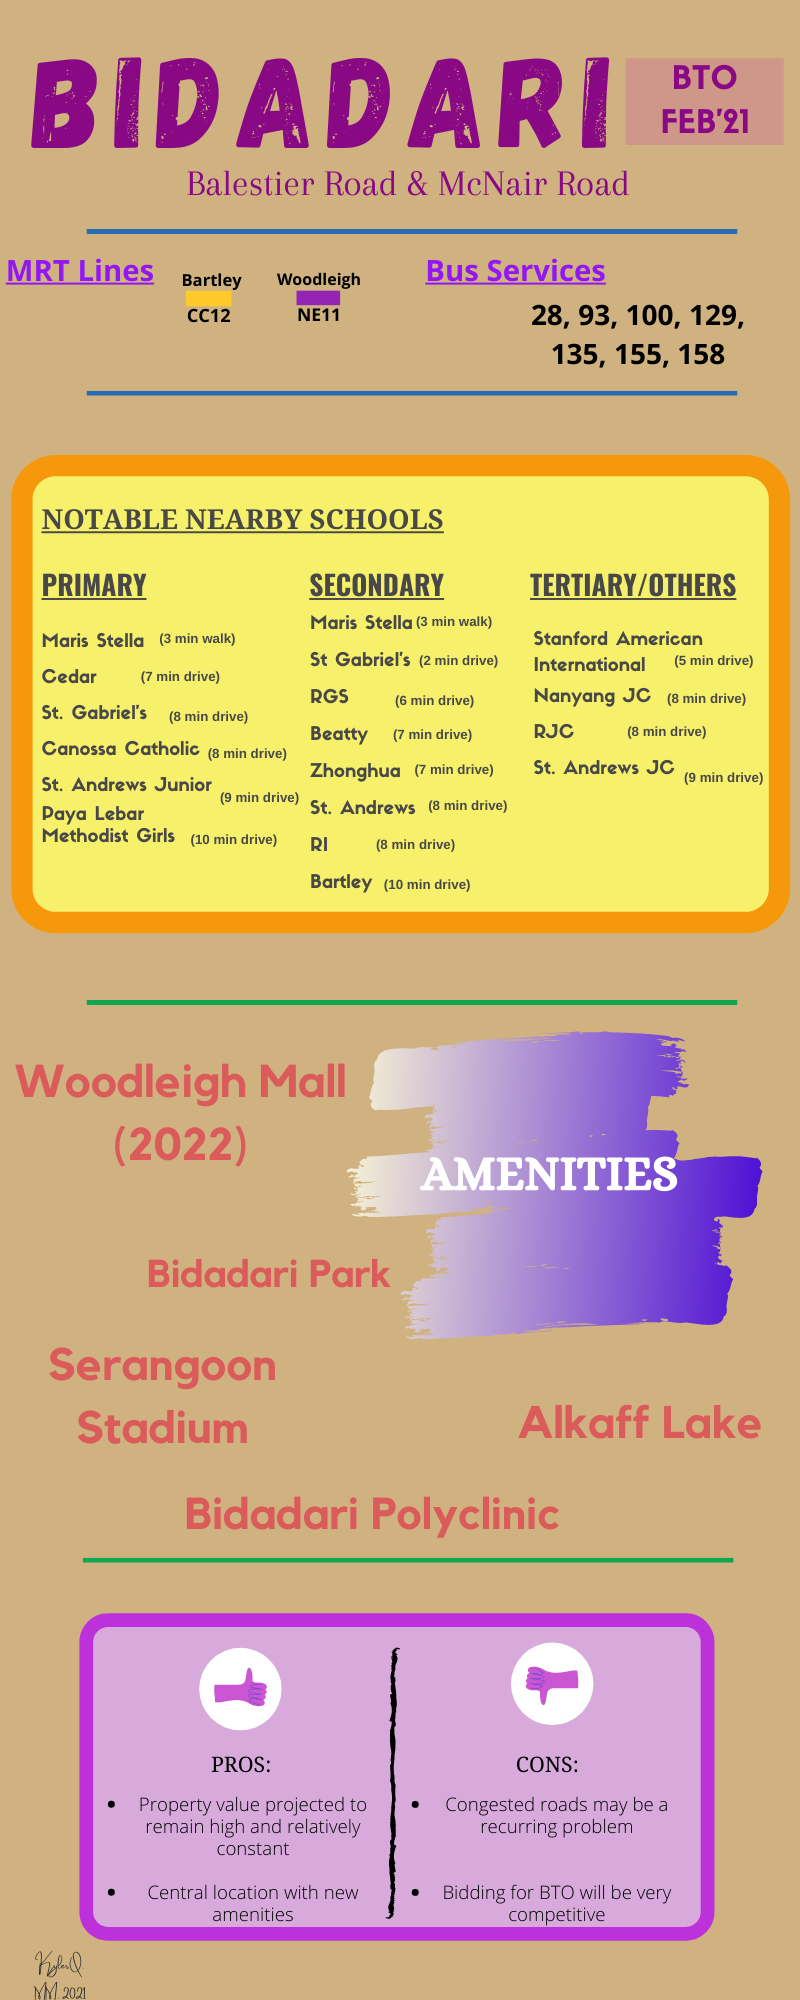 Infographic for Bidadari BTO